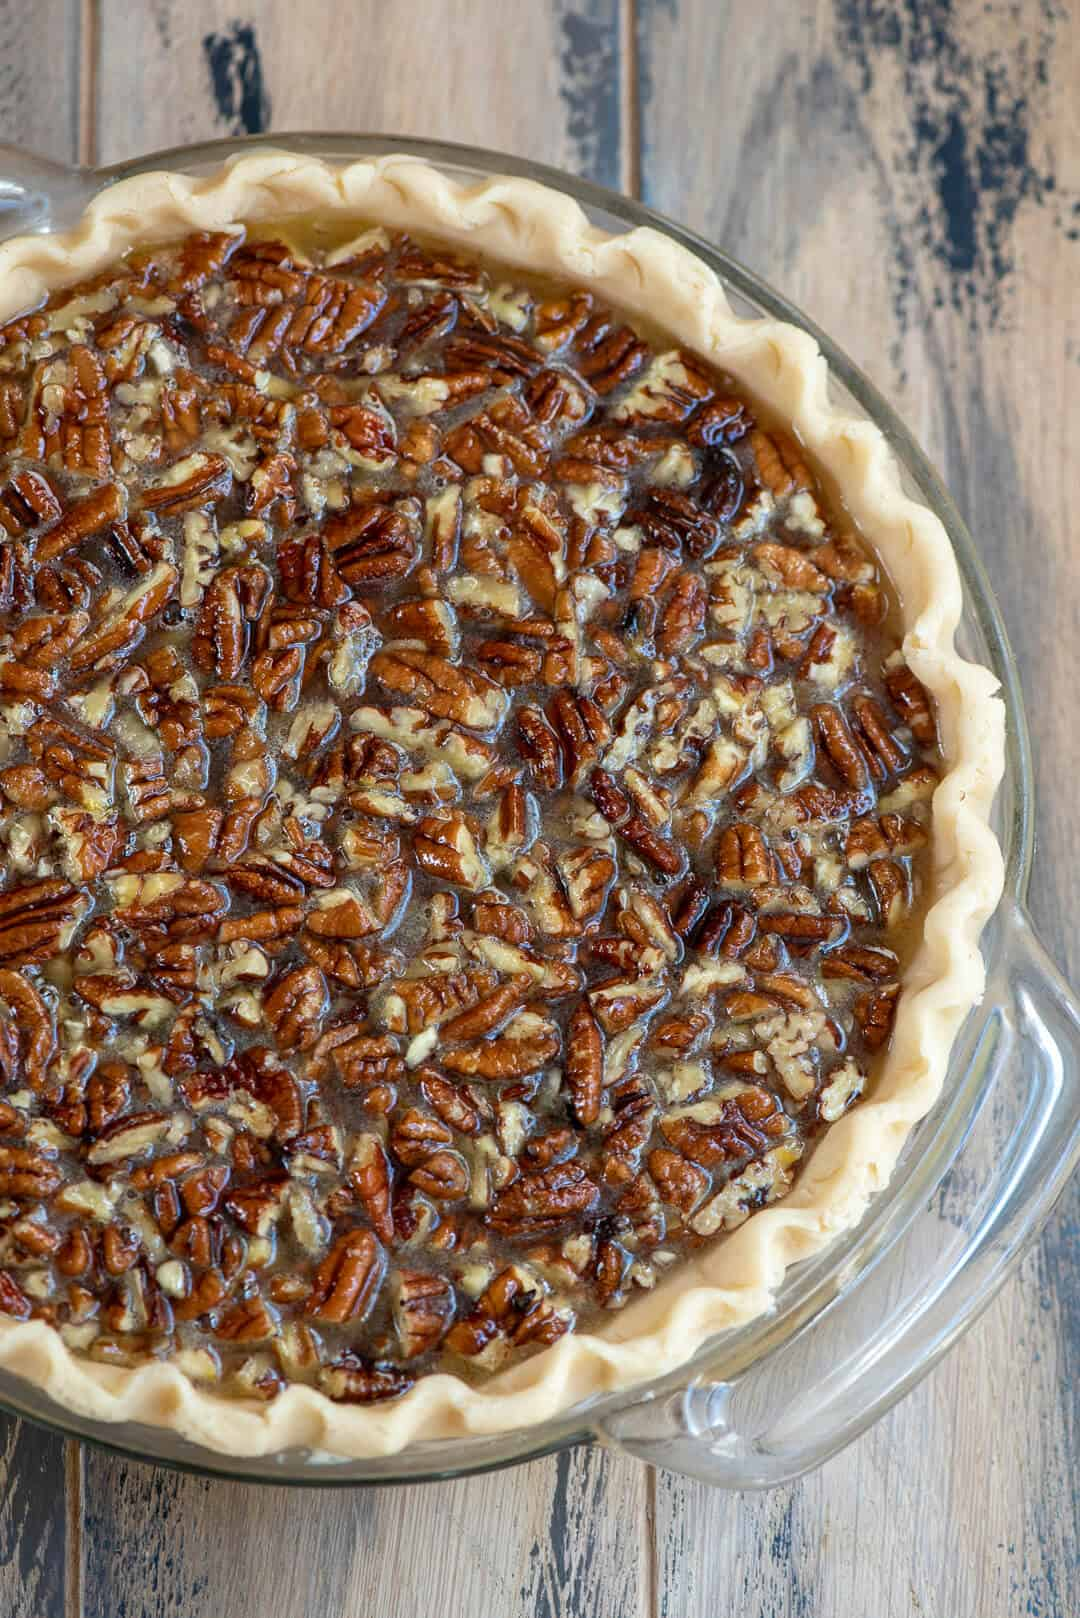 Bourbon Pecan Pie - ready to go in the oven